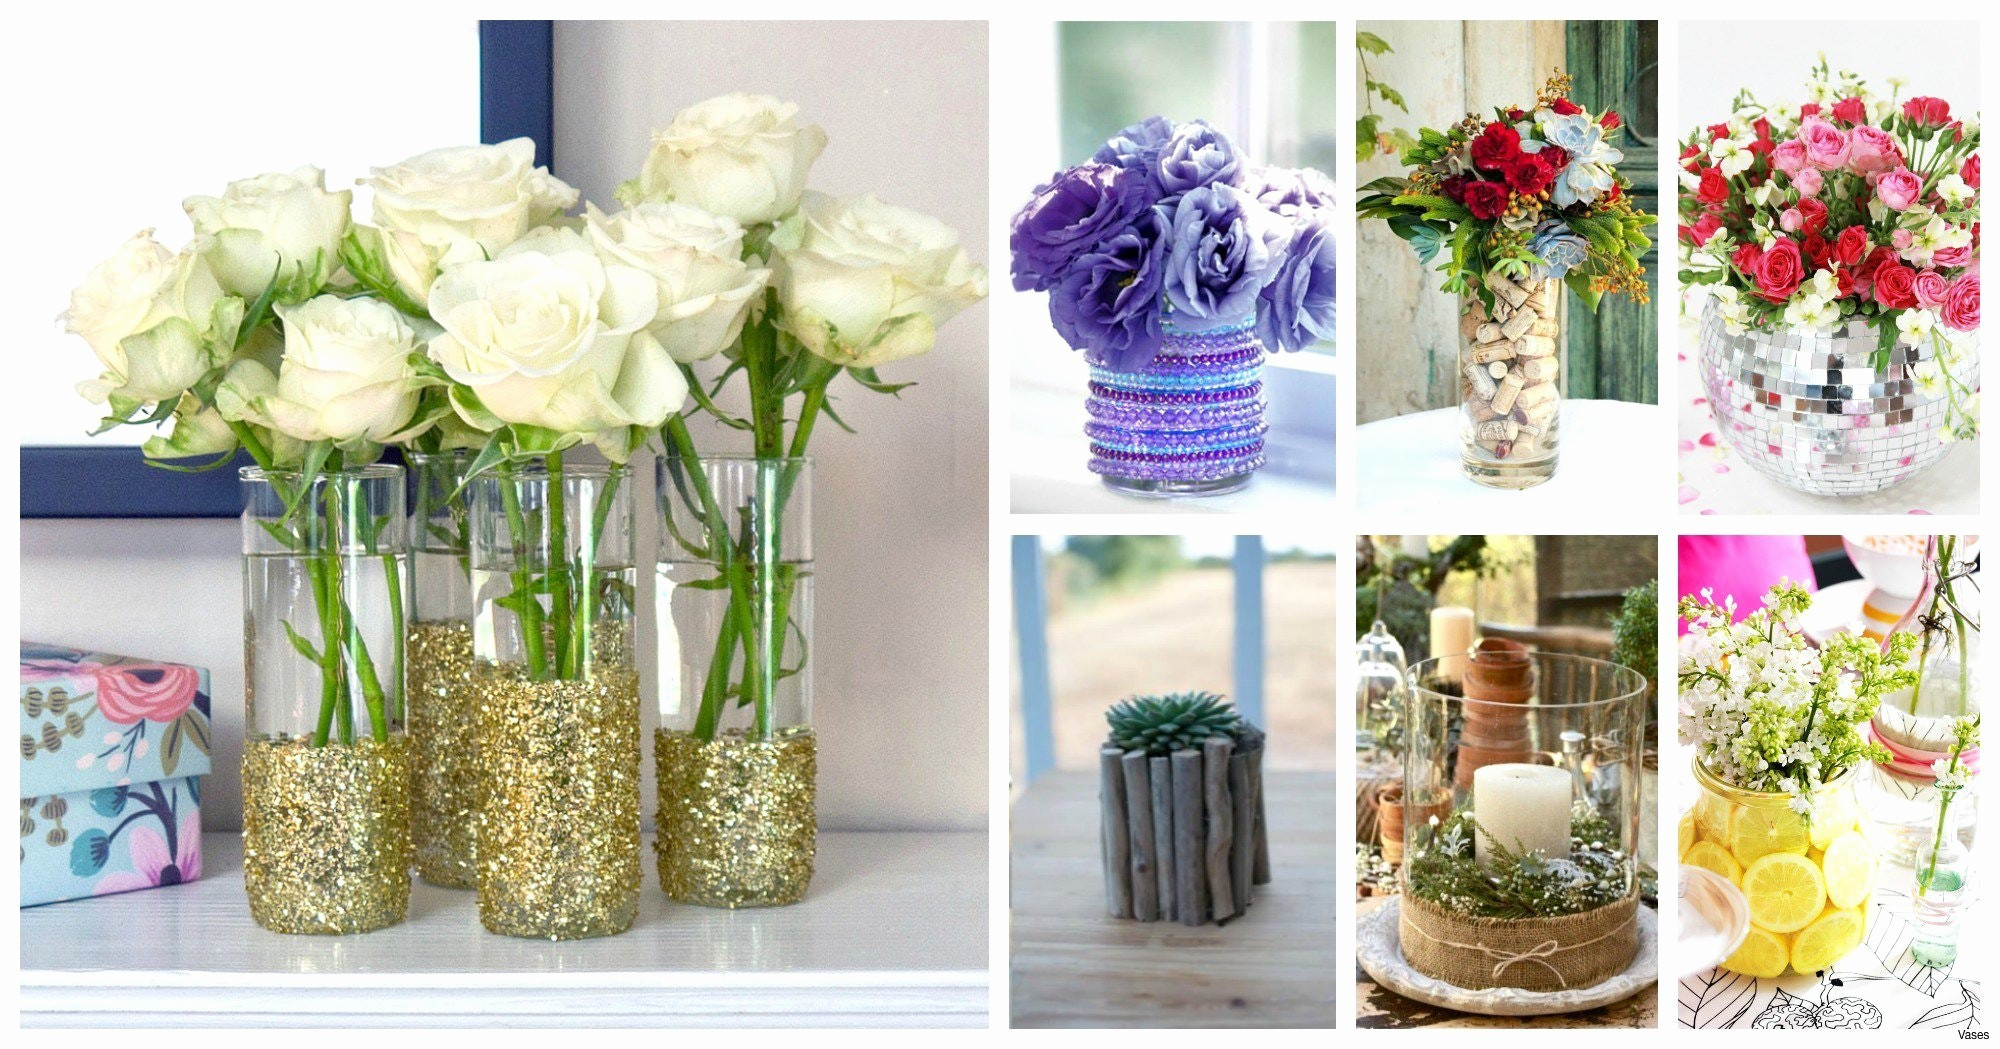 trumpet vase wedding centerpieces of wedding vase decoration ideas concept jar flower 1h vases bud with 16 modern wedding vase decoration ideas wedding vase decoration ideas fresh decorating ideas for wedding a